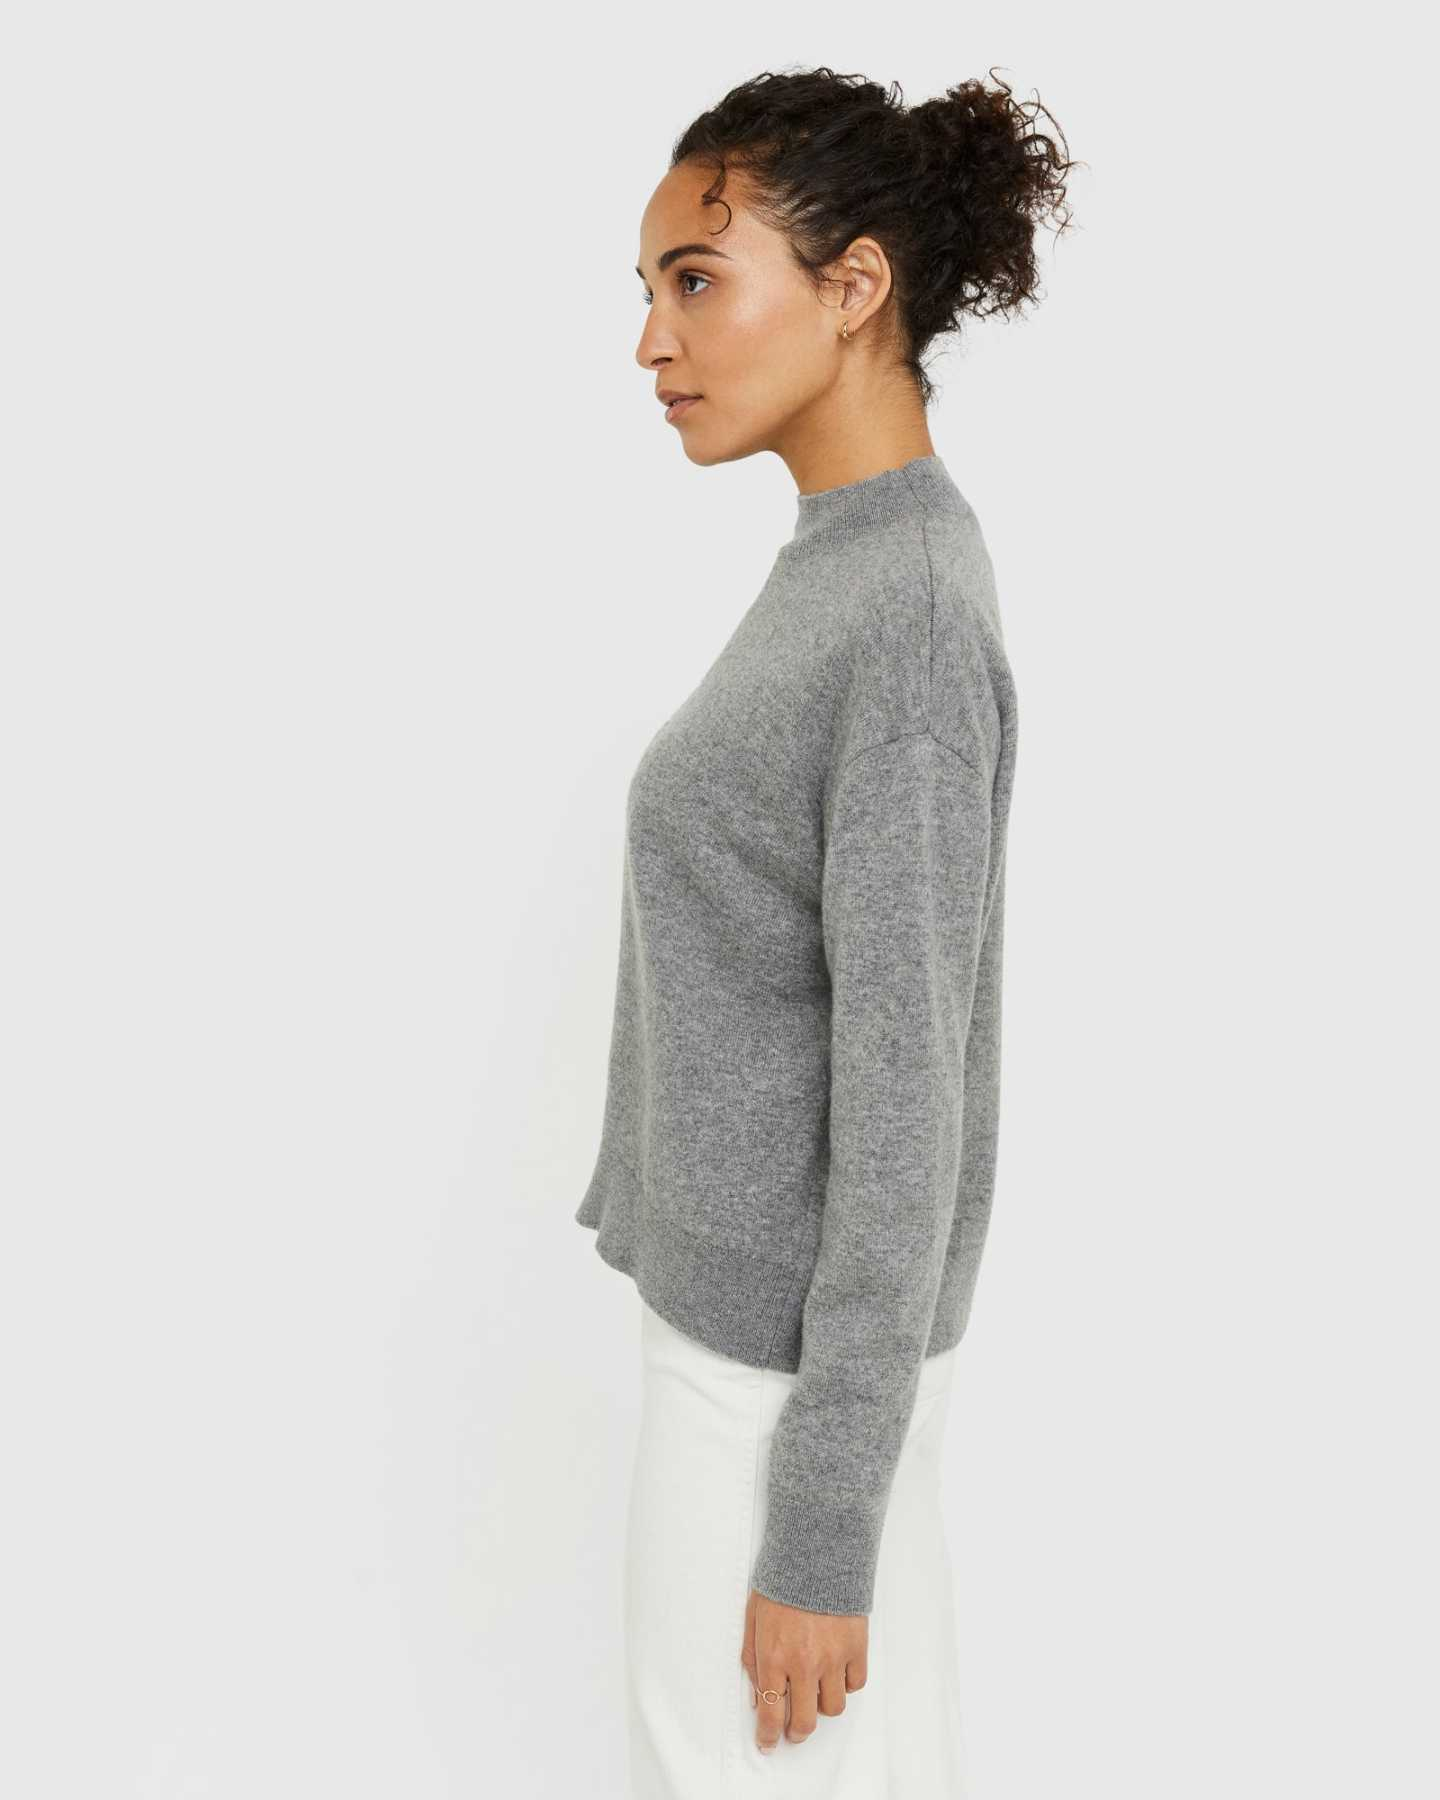 Woman wearing grey cashmere mockneck sweater from side looking away